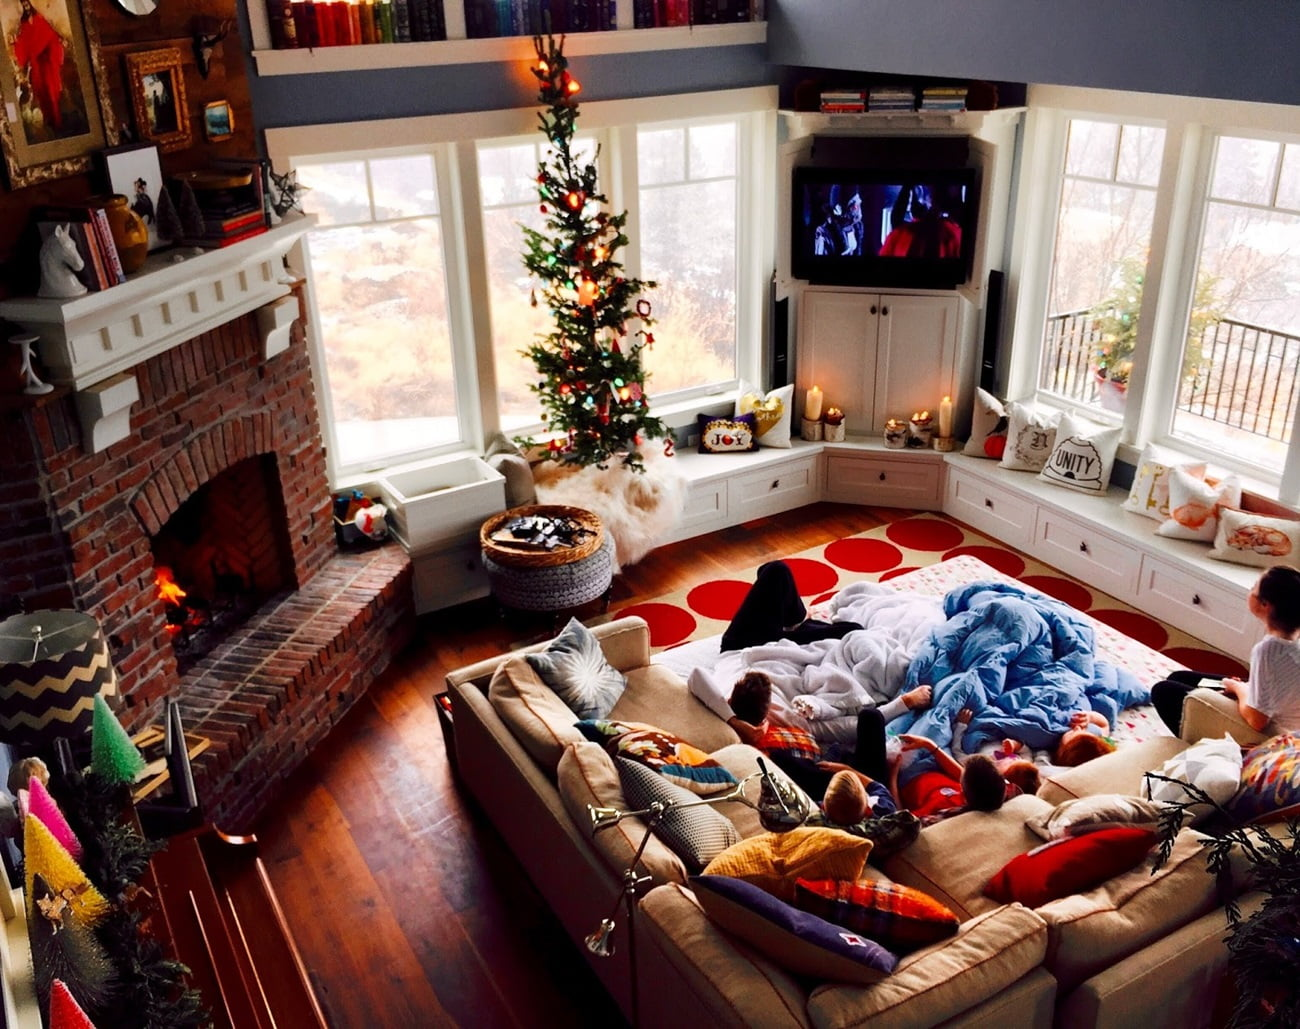 Top view of the large bay window living room with Christmas atmosphere inside